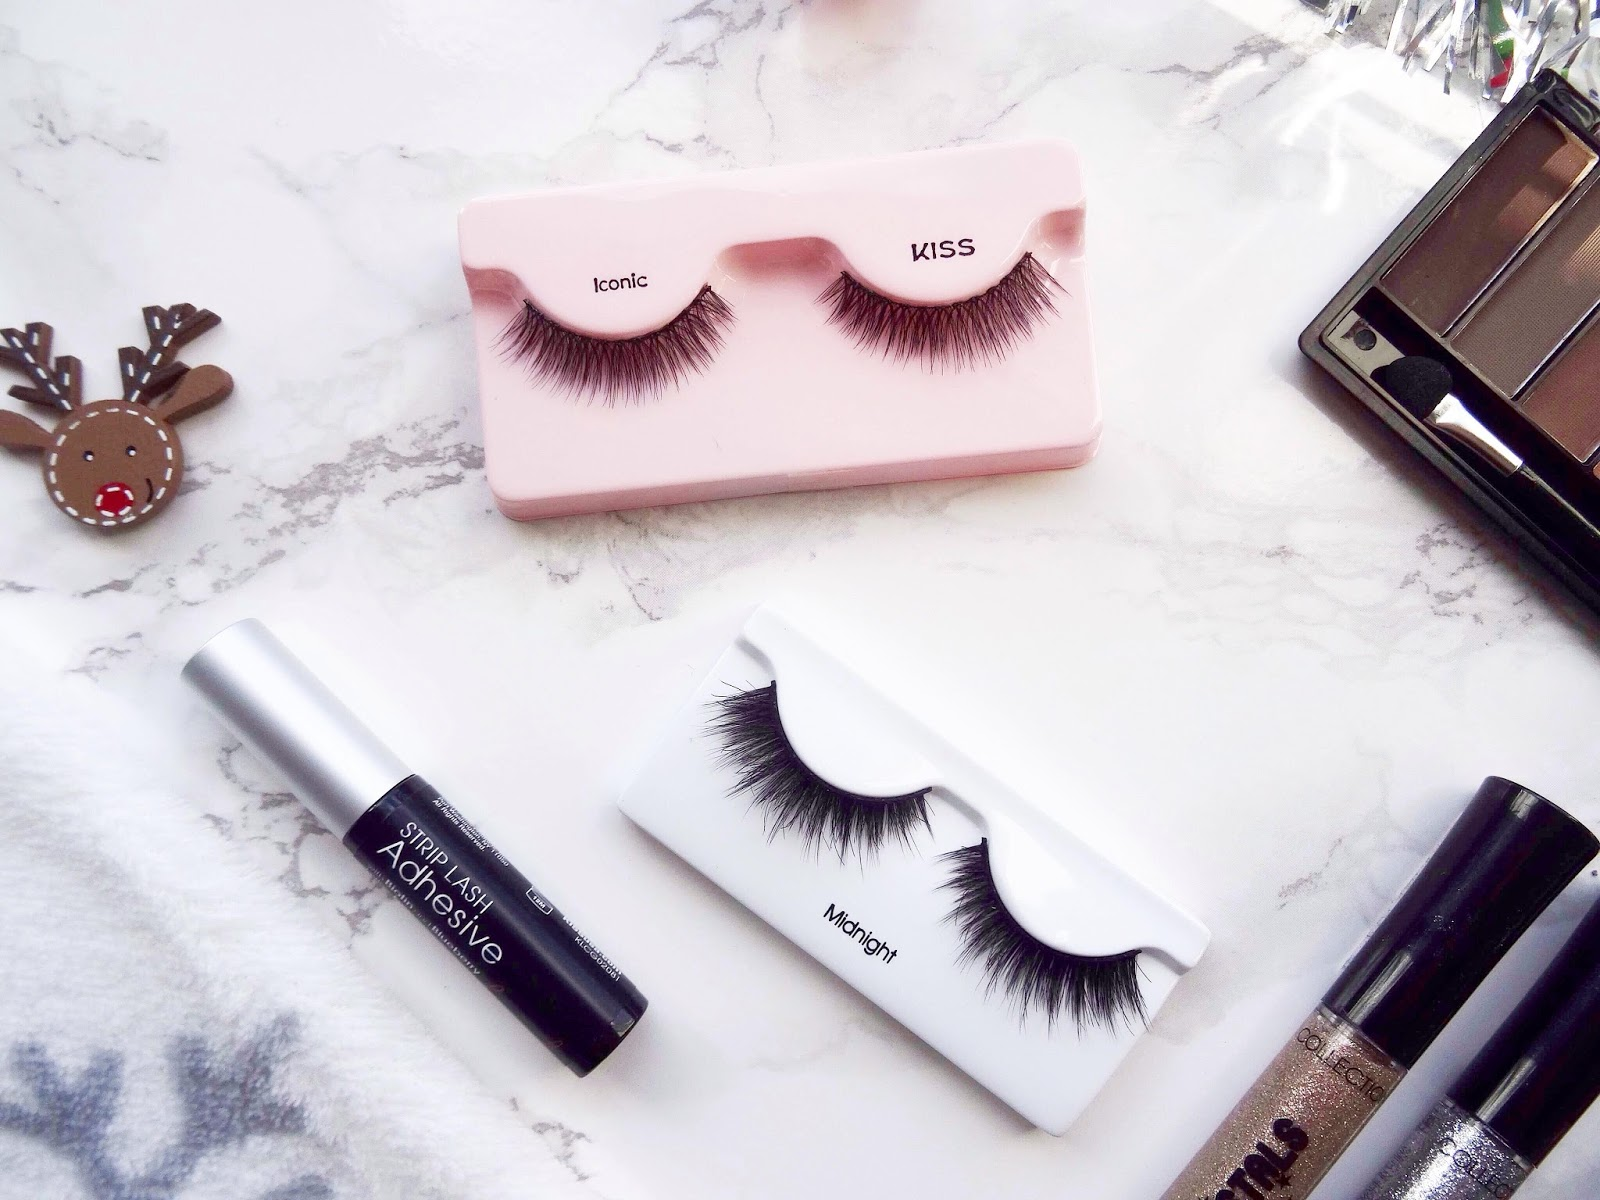 Kiss Natural False Lashes in Iconic and Kiss Lash Couture Faux Minx Lashes in Midnight